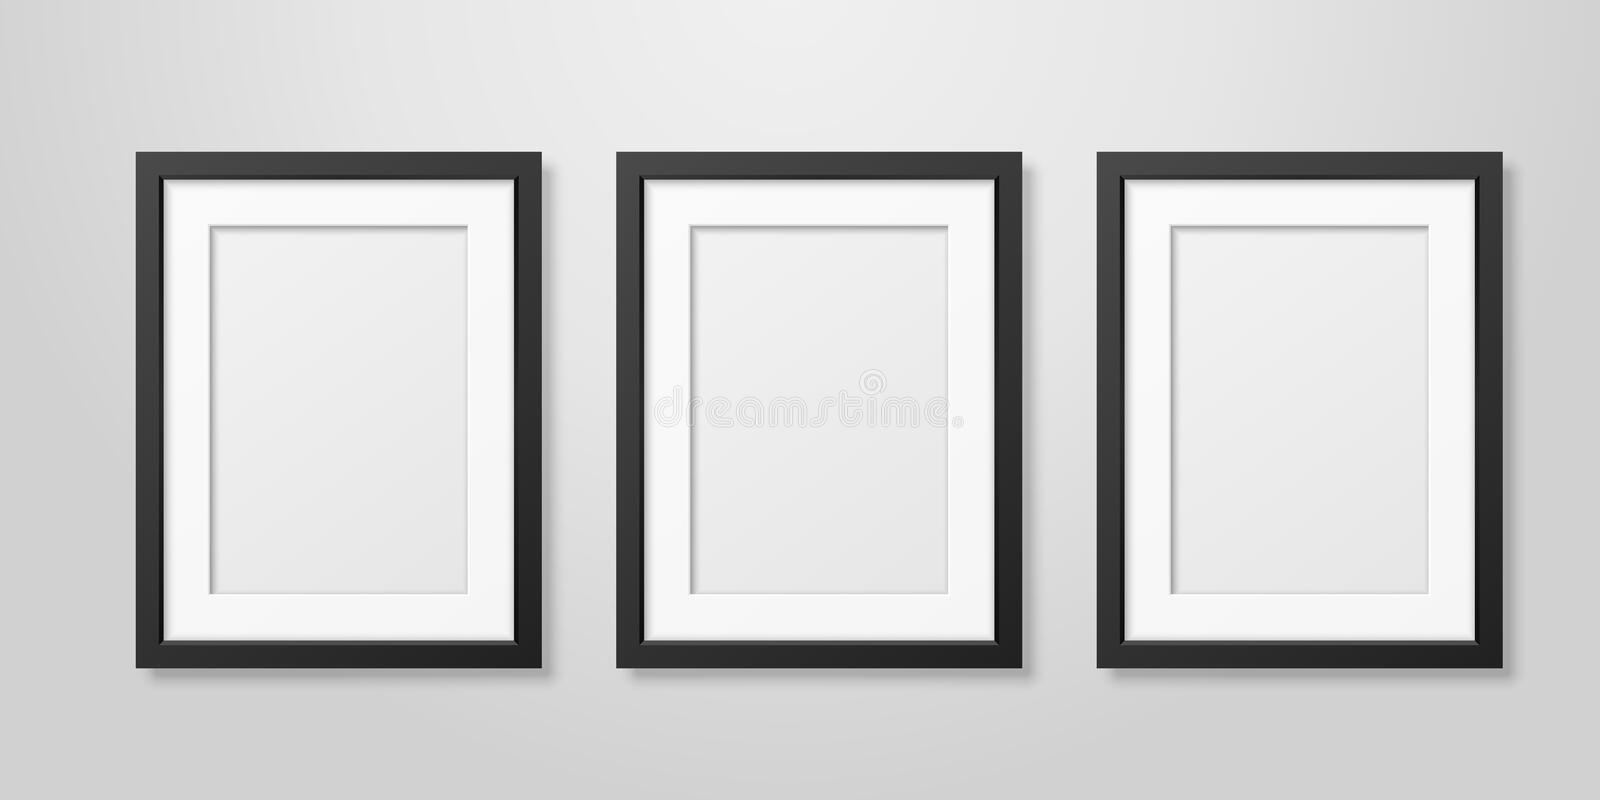 Three Vector Realistic Mofern Interior Black Blank Vertical A4 Wooden Poster Picture Frame Set Closeup on White Wall vector illustration